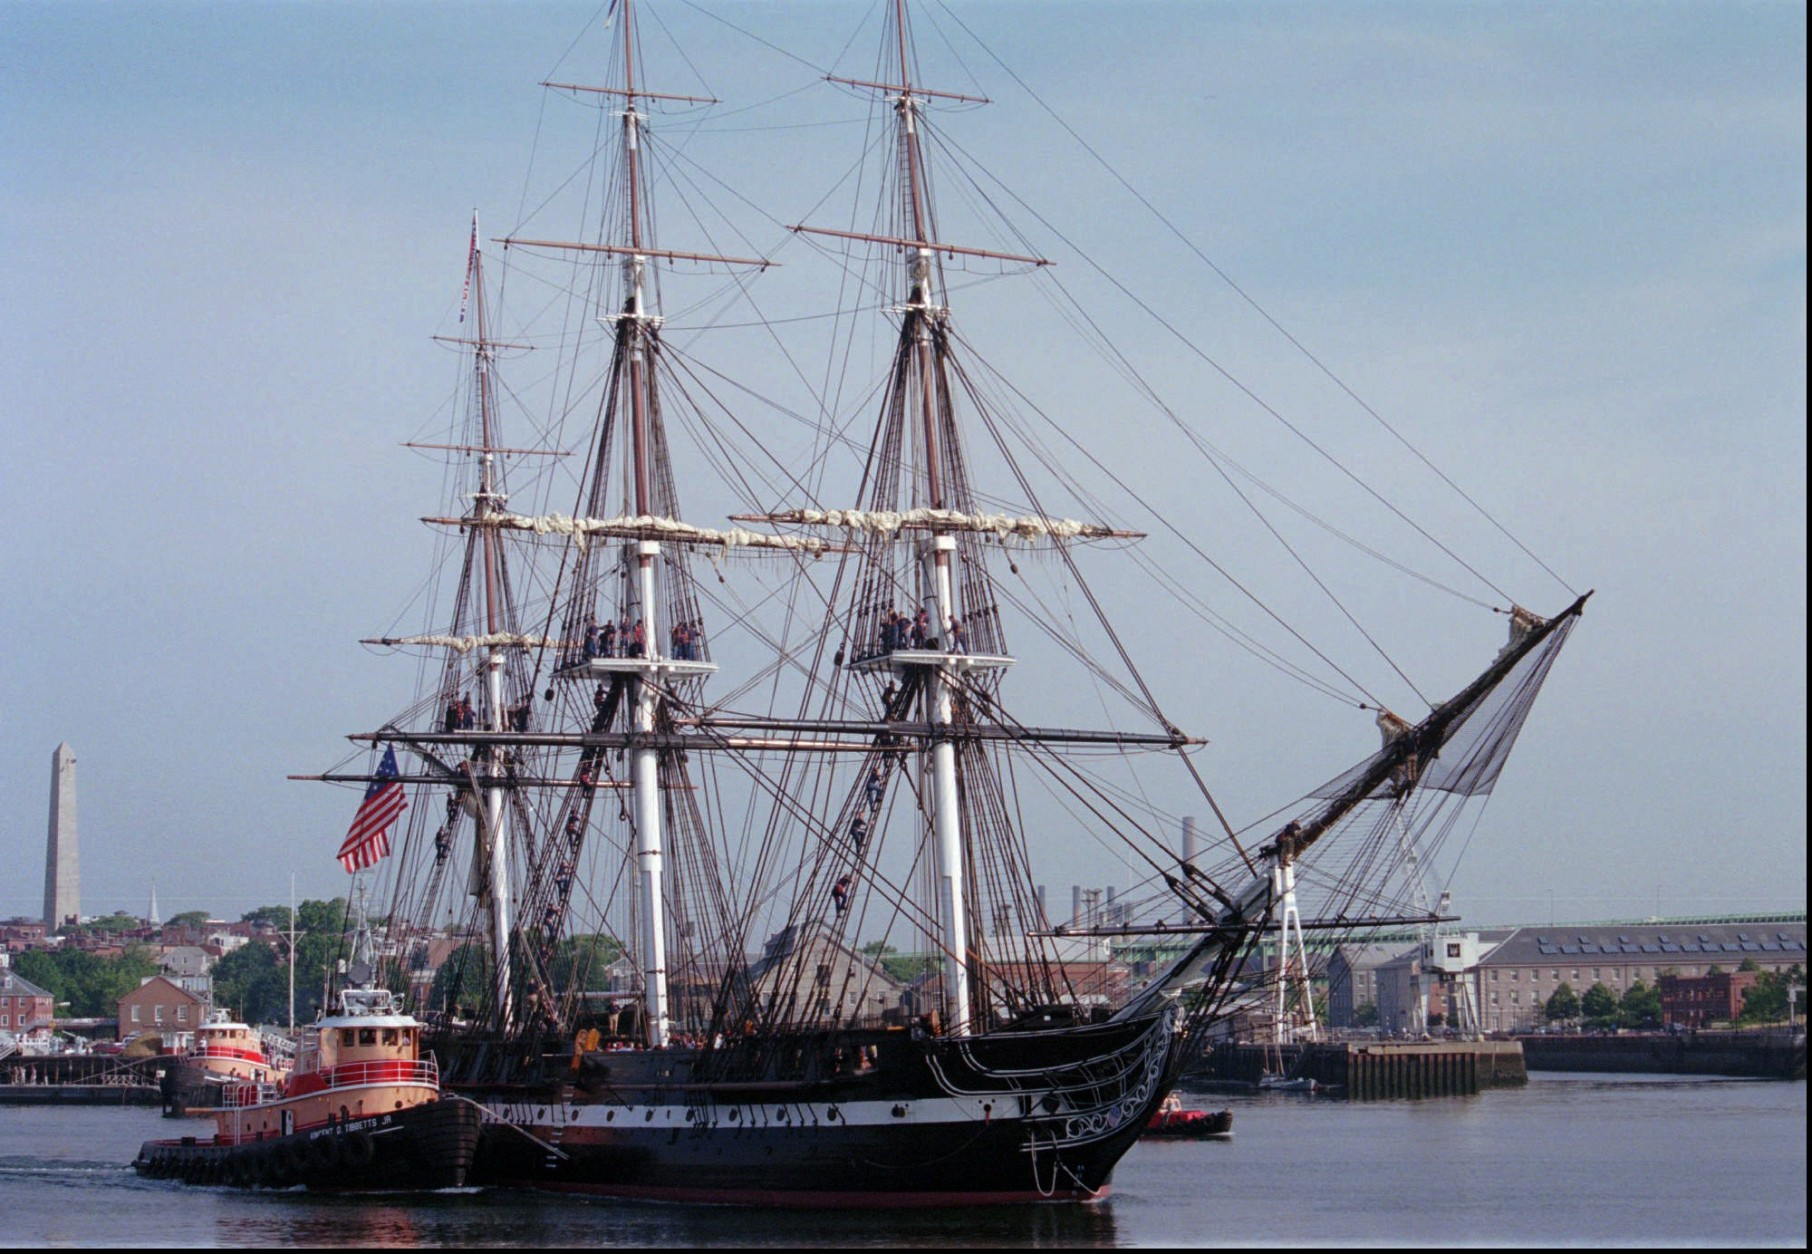 Crew members climb aloft to duty stations as the USS Constitution is carefully guided from its berth at the Charlestown Navy Yard in Boston, early Tuesday morning, July 8, 1997, as it is towed out of Boston Harbor for a day of sea trials in preparation for its 200th anniversary sail July 21, 1997. The July 21st sail celebration will be the ship's first under its own power sail in 116 years.(AP Photo/Isabel Leon)